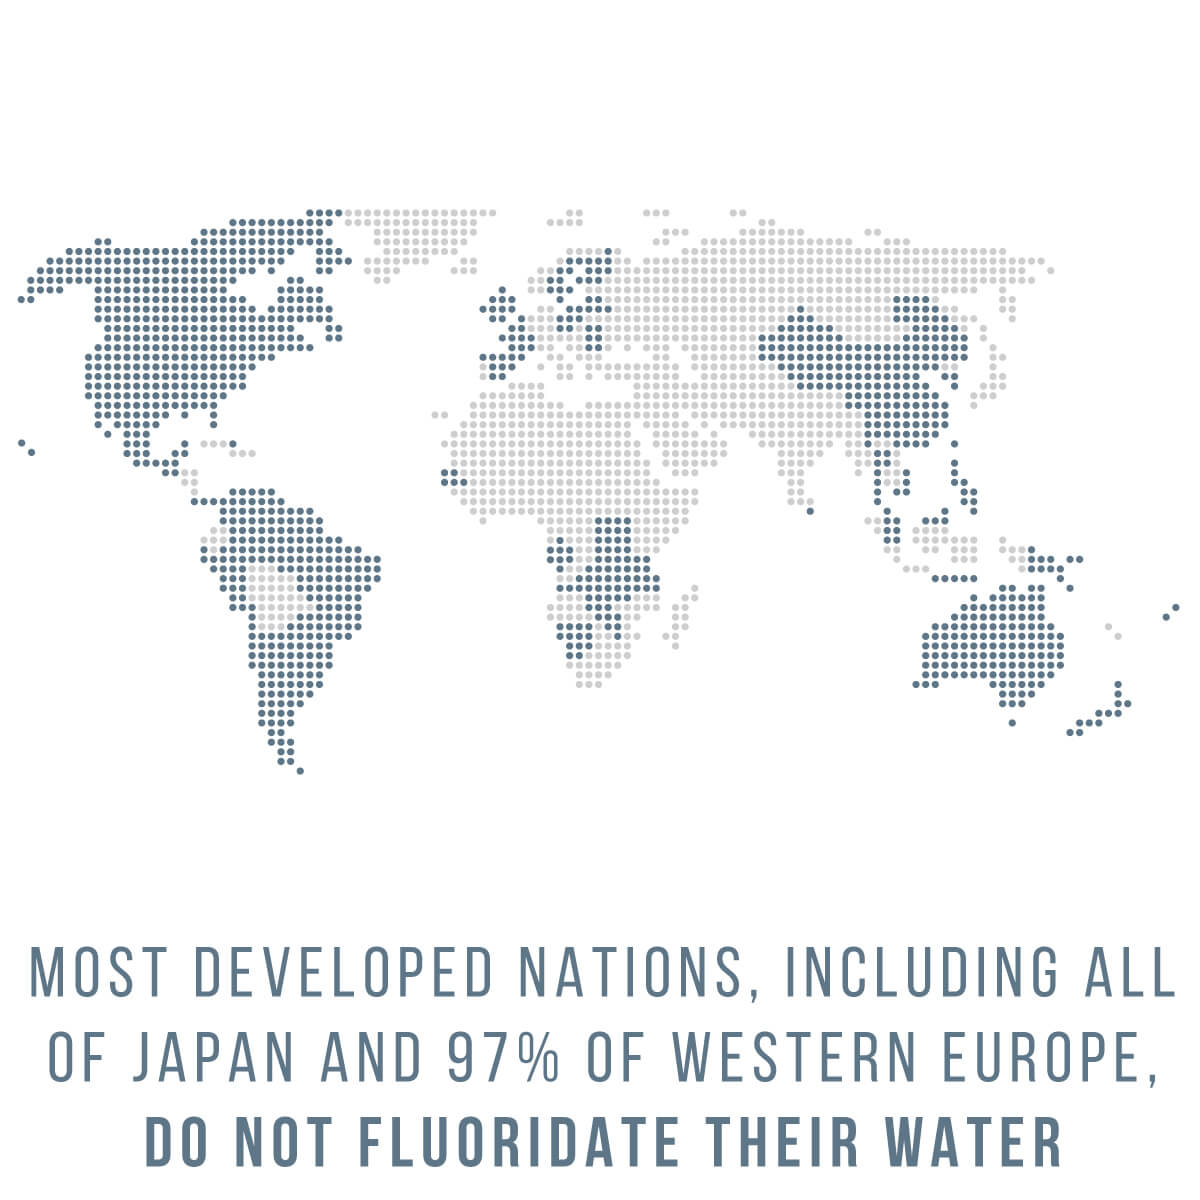 Most developed nations, including Japan and 97% of western Europe, do not fluoridate their water.